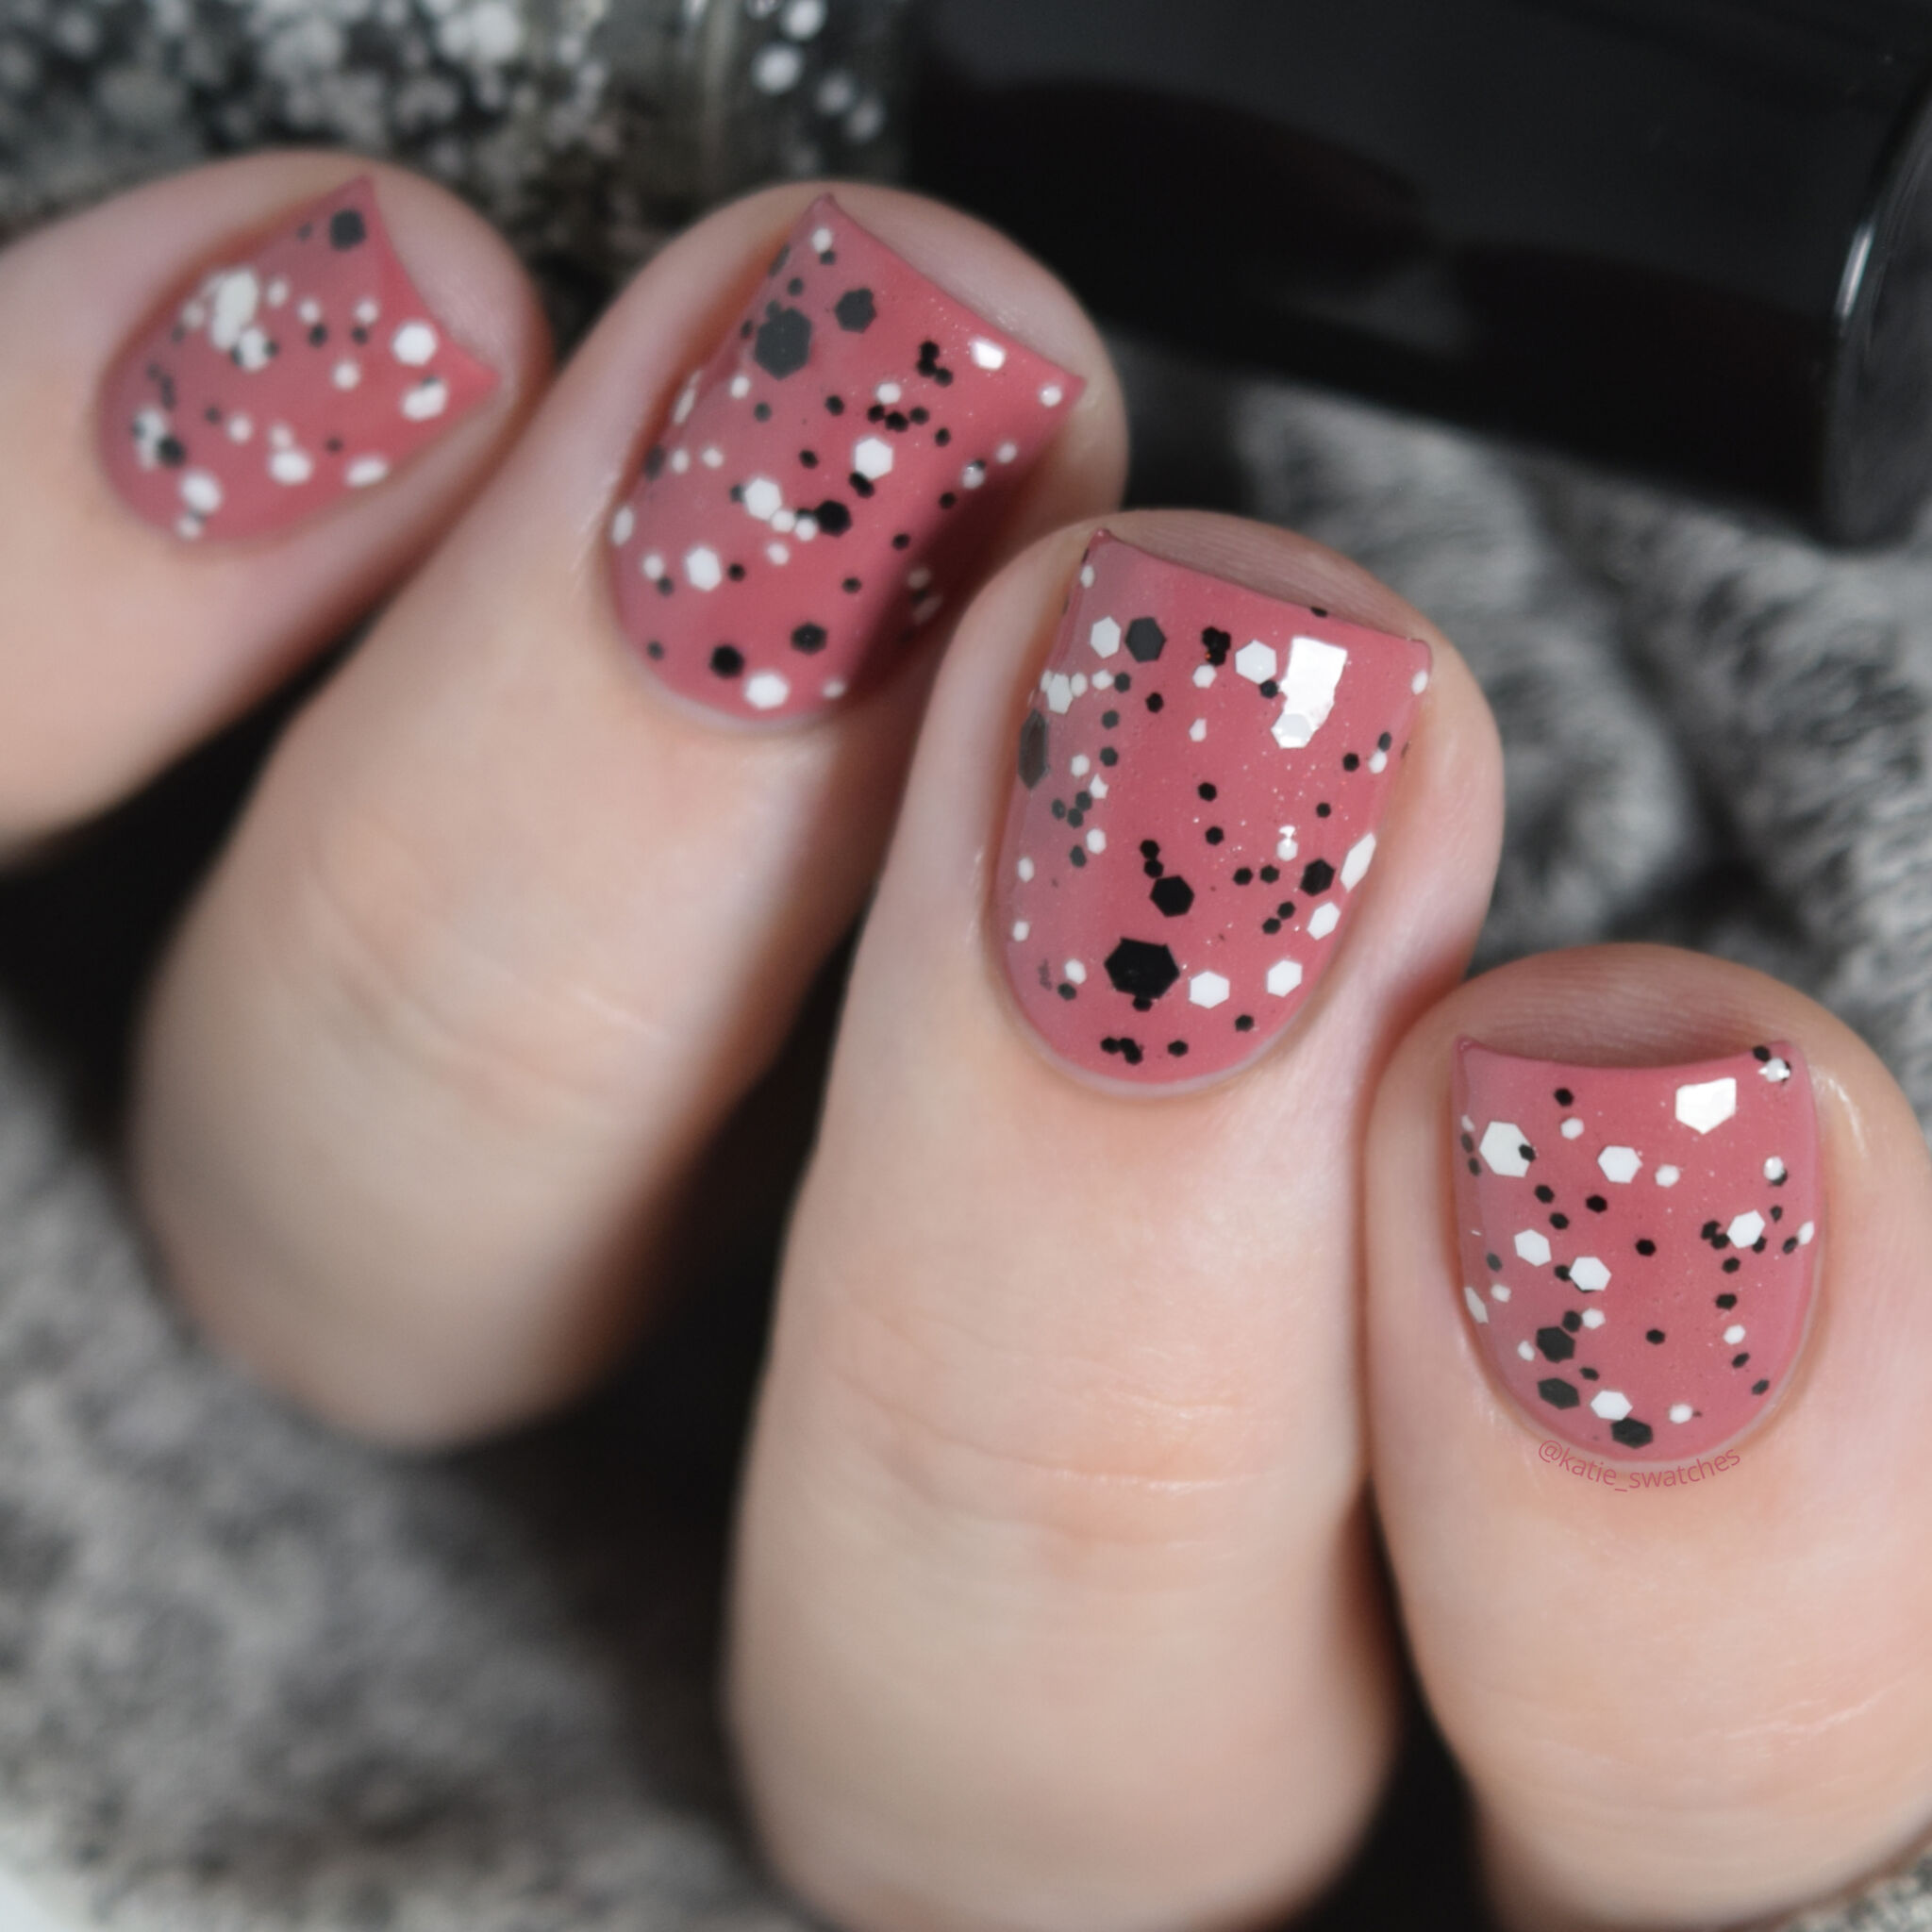 Dollish Polish Putting on the Ritzzz! layered over Sephora Color Hit Rose Bouquet nail polish swatch. Black and white glitter nail polish over a dusty rose creme nail polish.